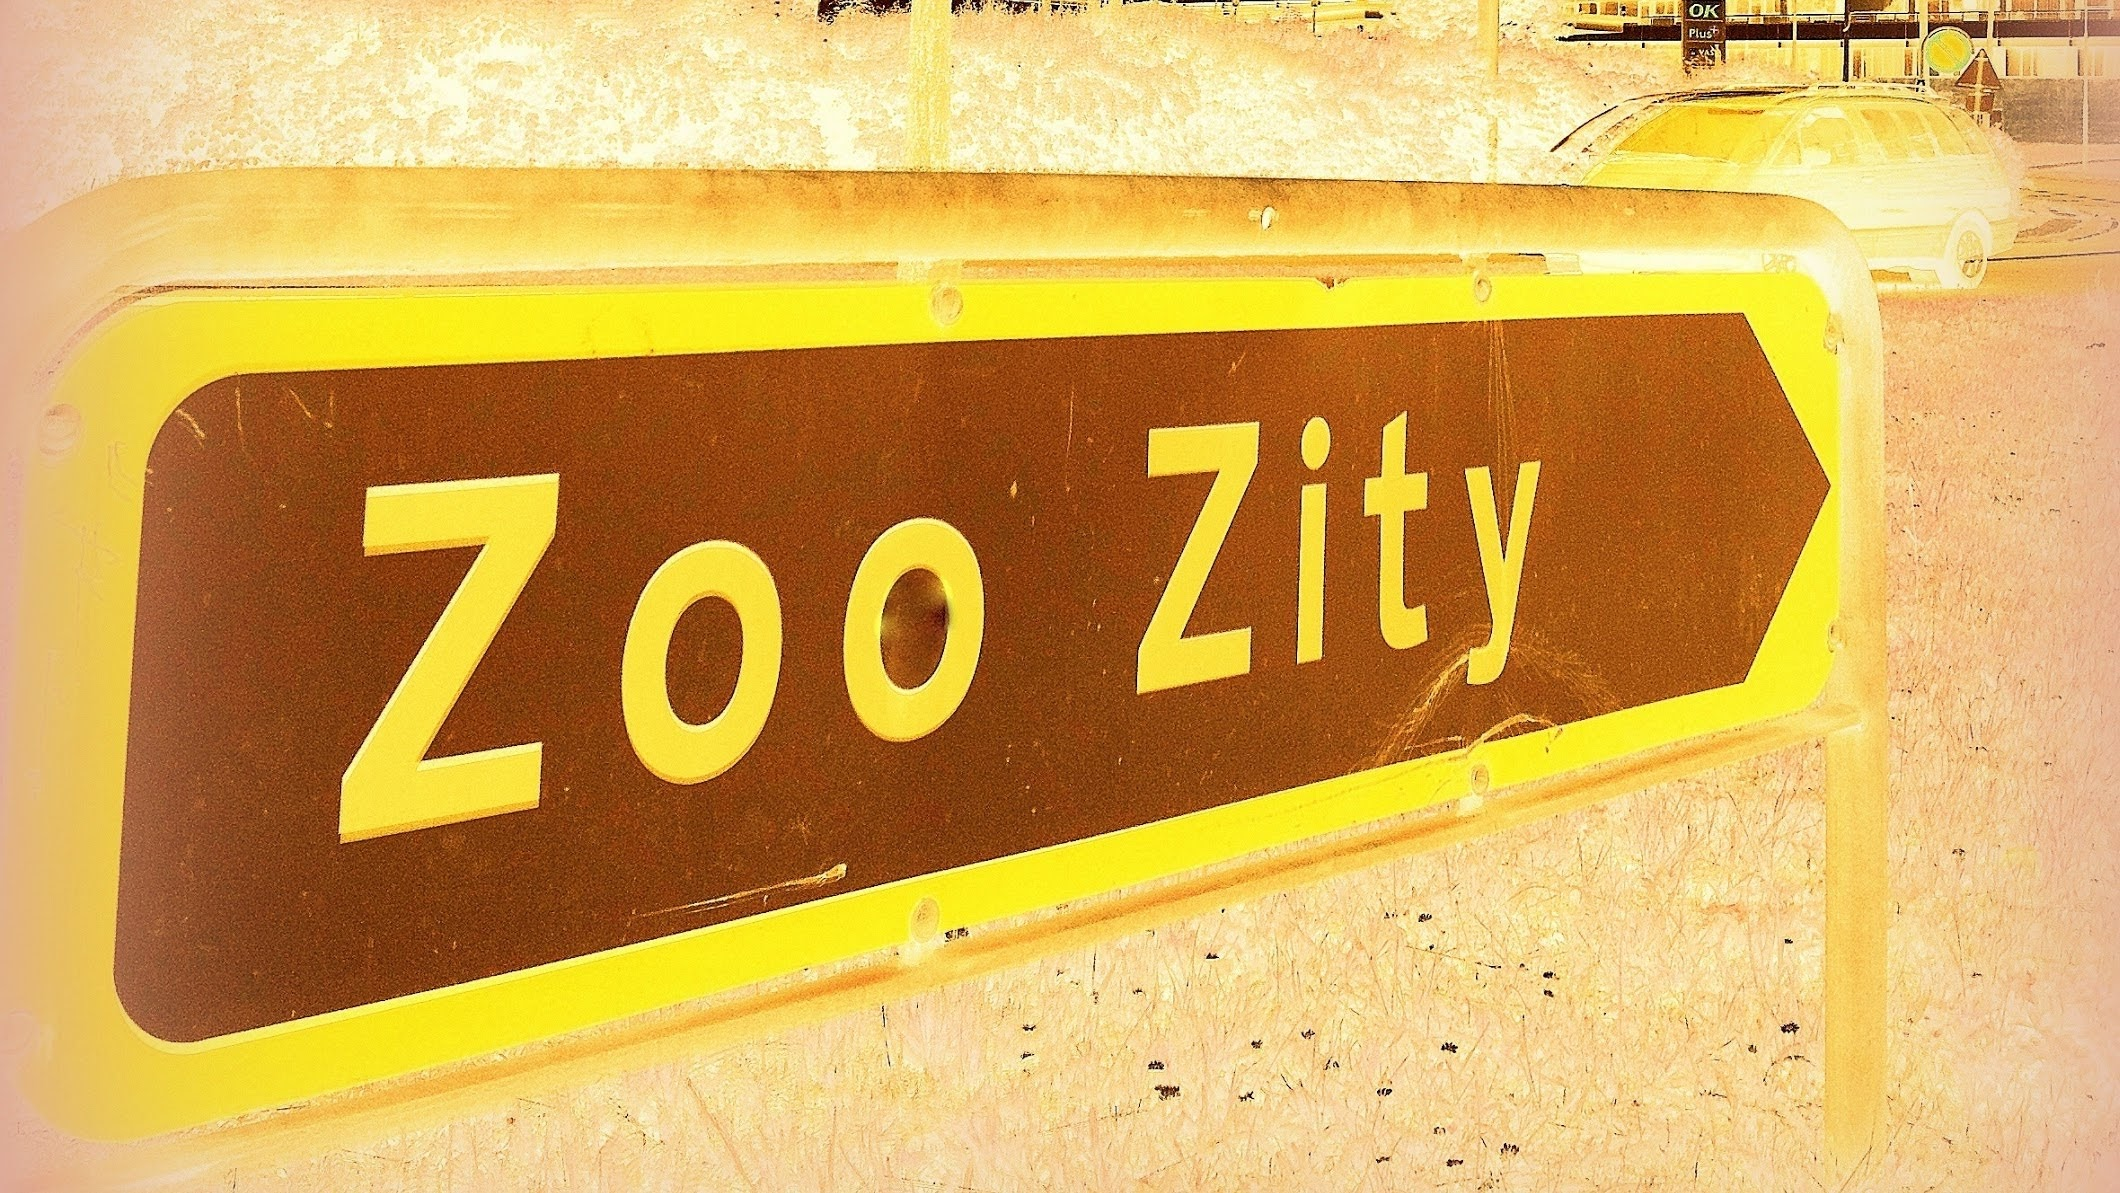 Pj Madly Zoo Zitycph Youtube